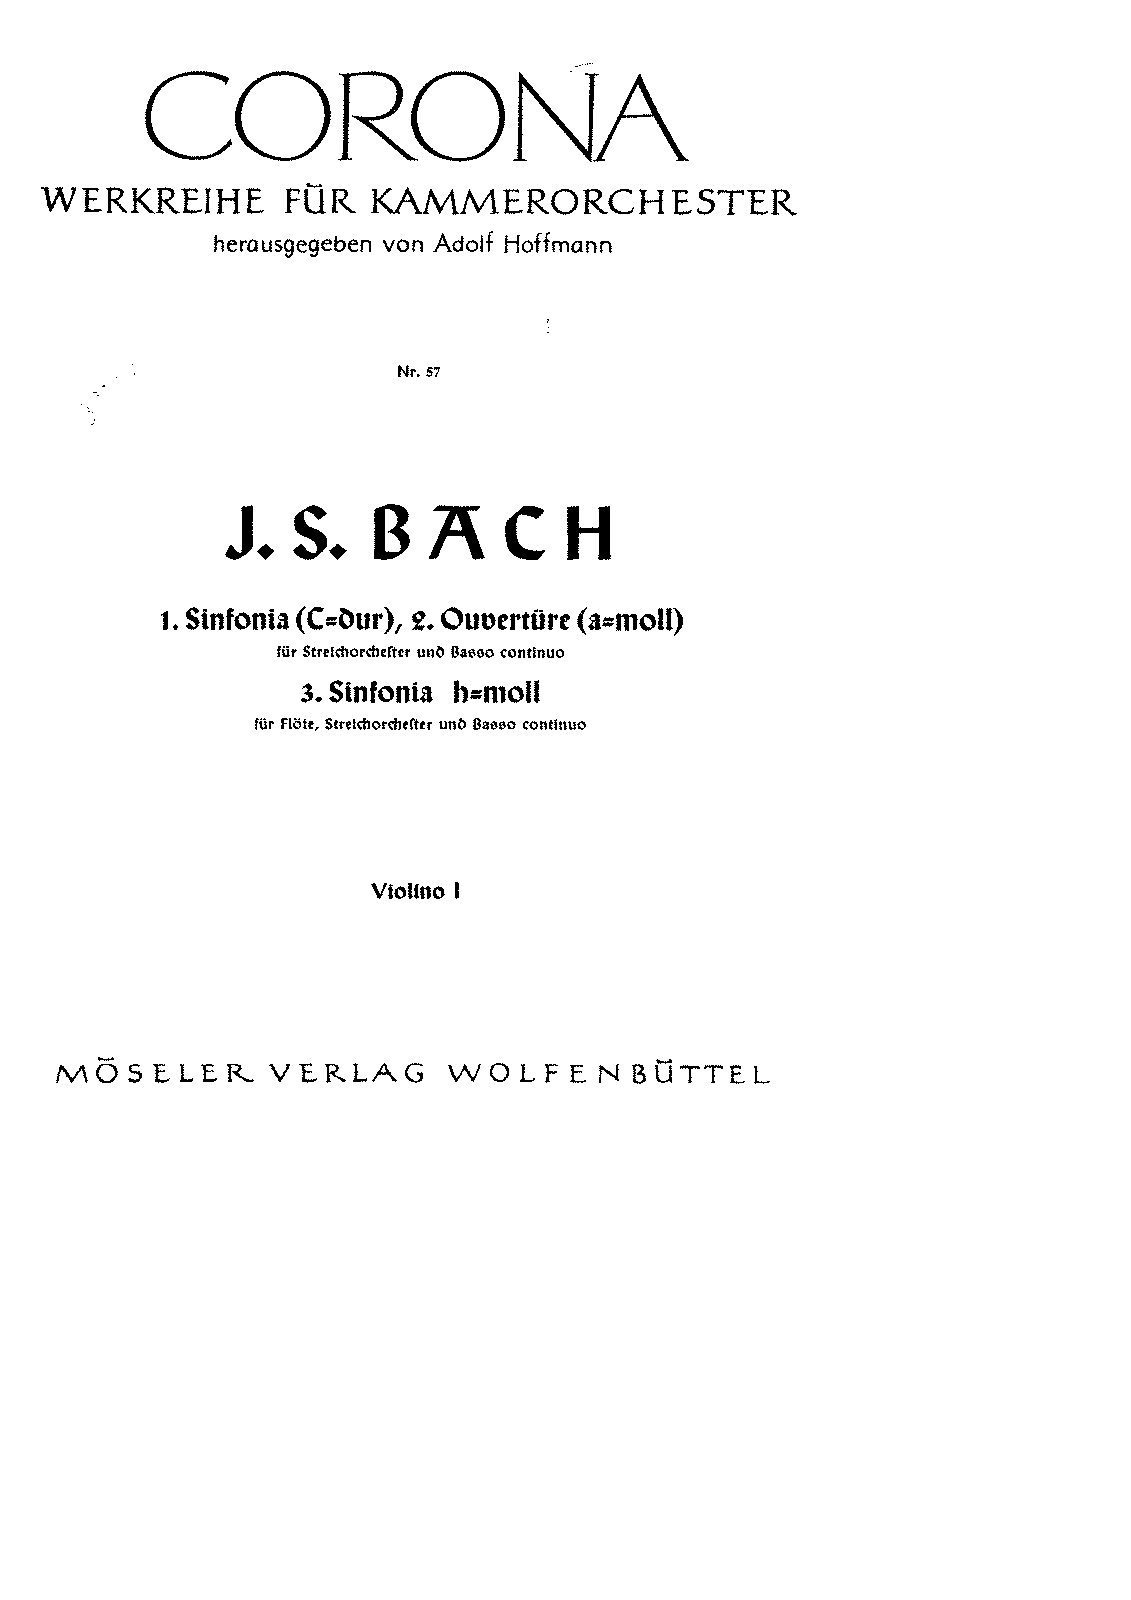 PMLP592663-J.S.Bach Sinfonia, Ouvertüre, Sinfonia for Strings Vl1.pdf